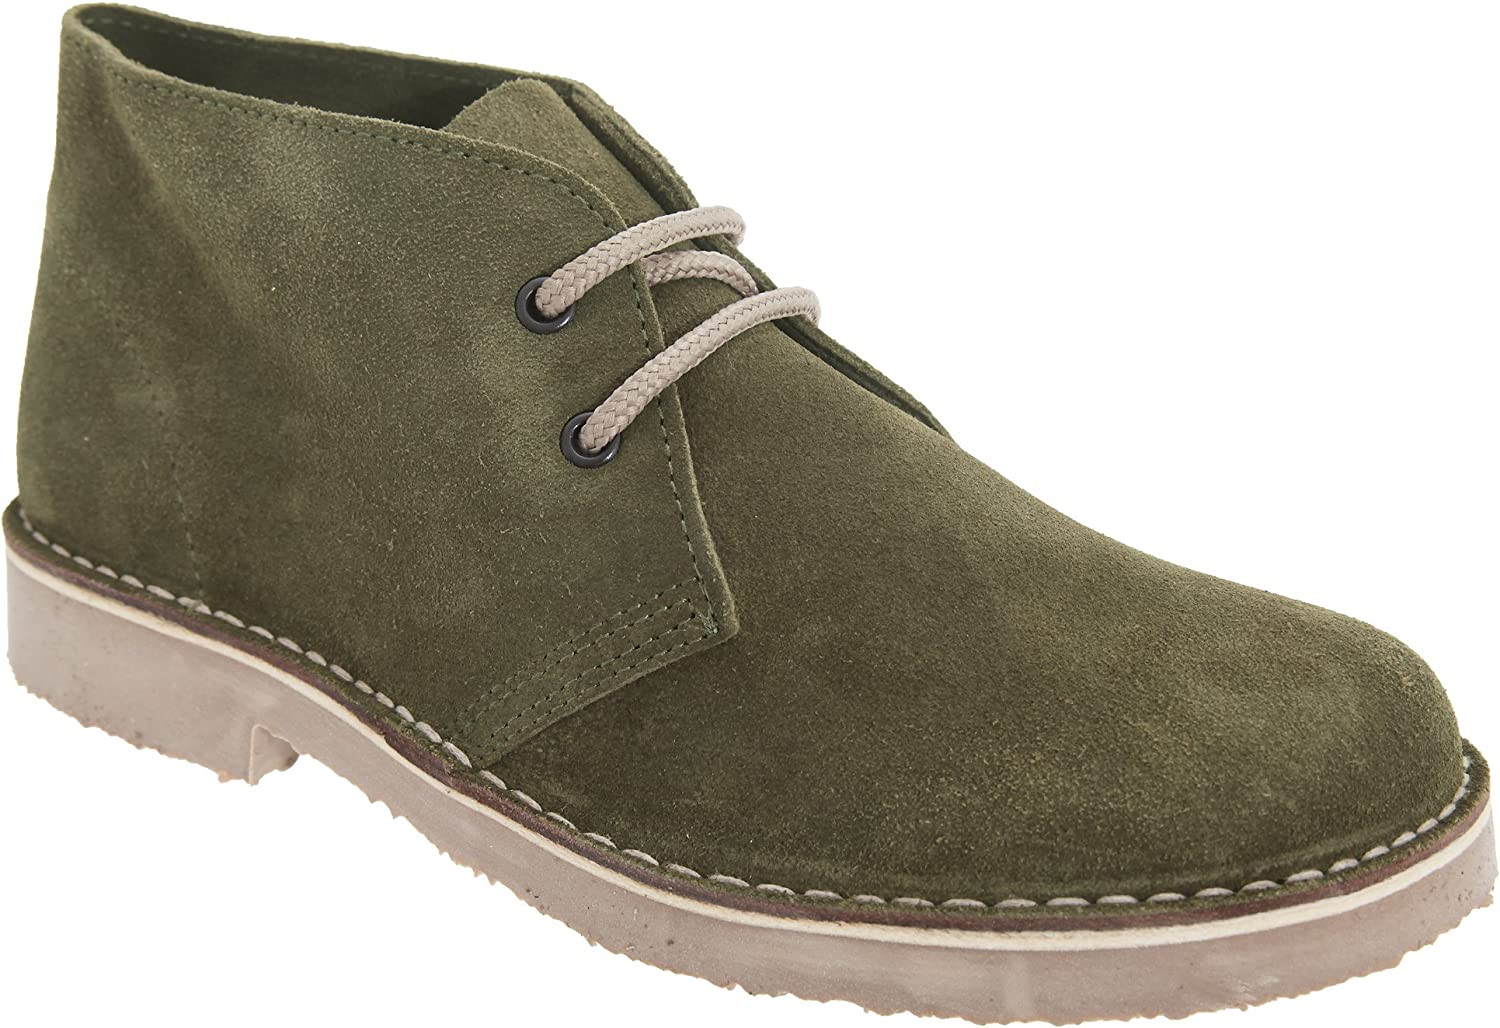 Roamer Womens Ladies Real Suede Round Toe Unlined Desert Boots